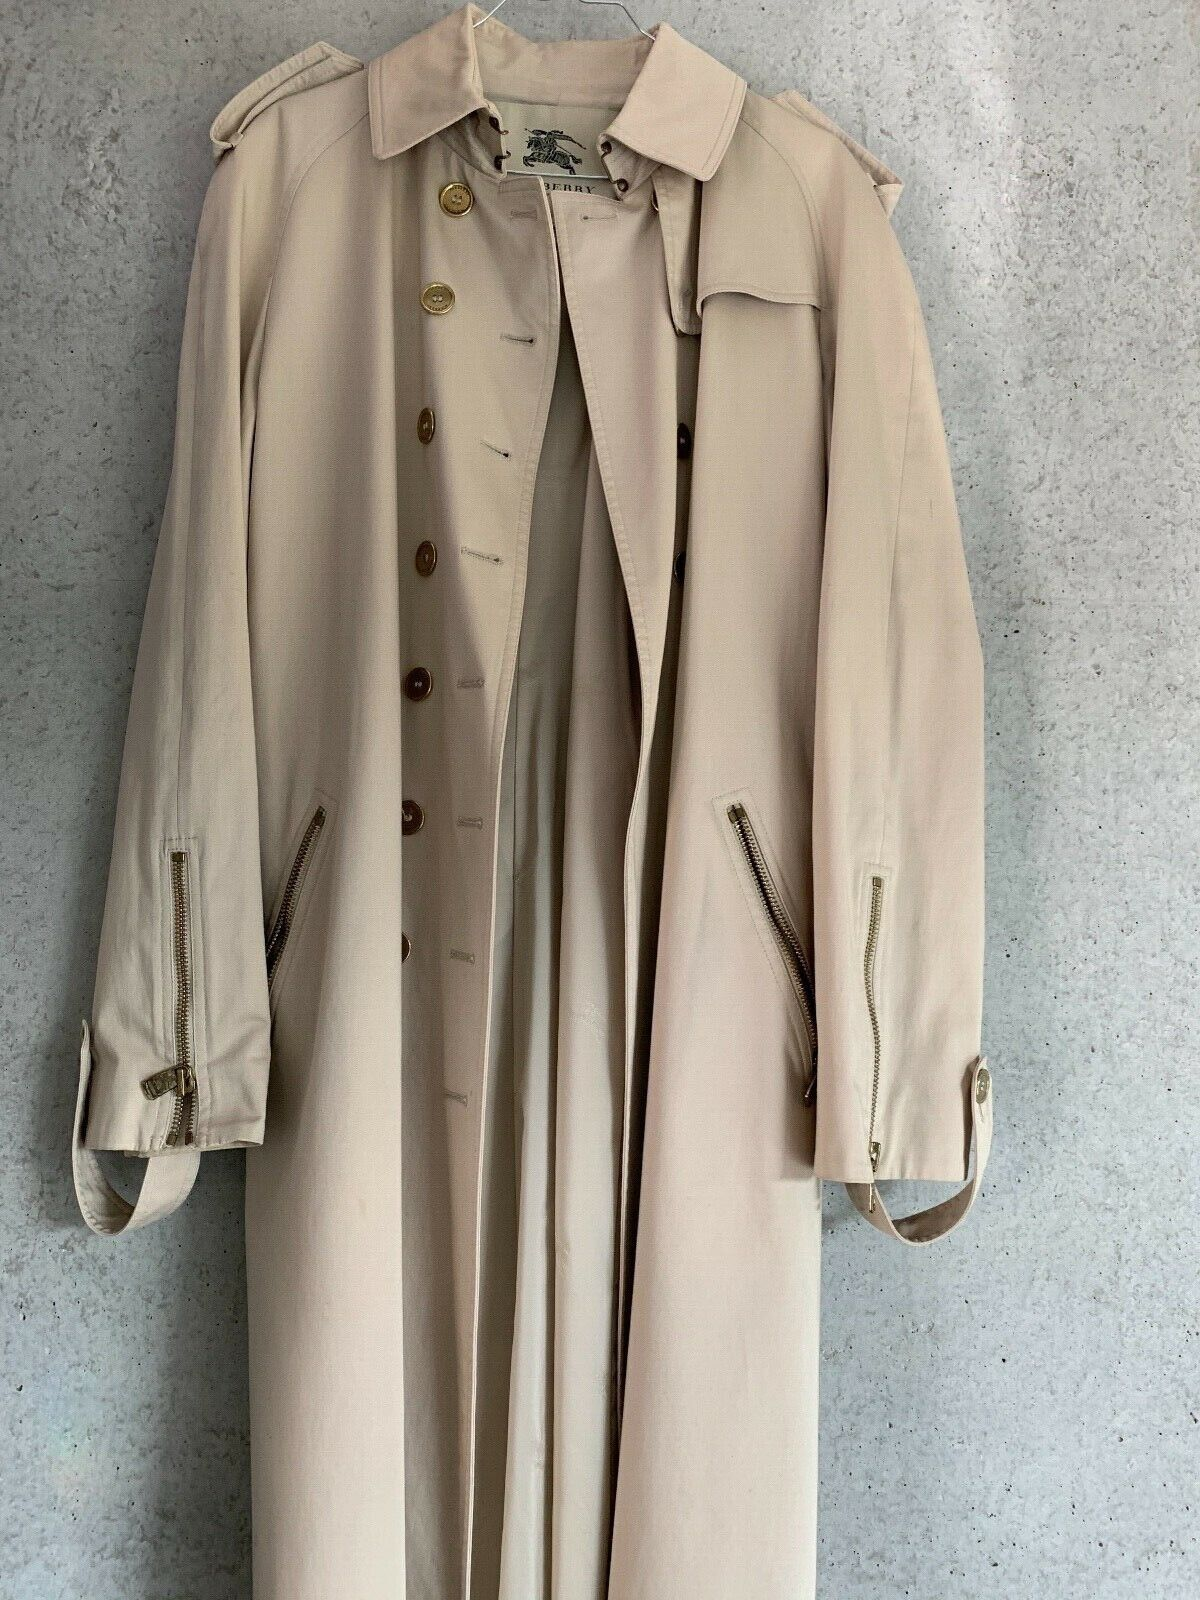 Trench coat  burberrys coupe moderne femme taille 44(fr) 16(uk)